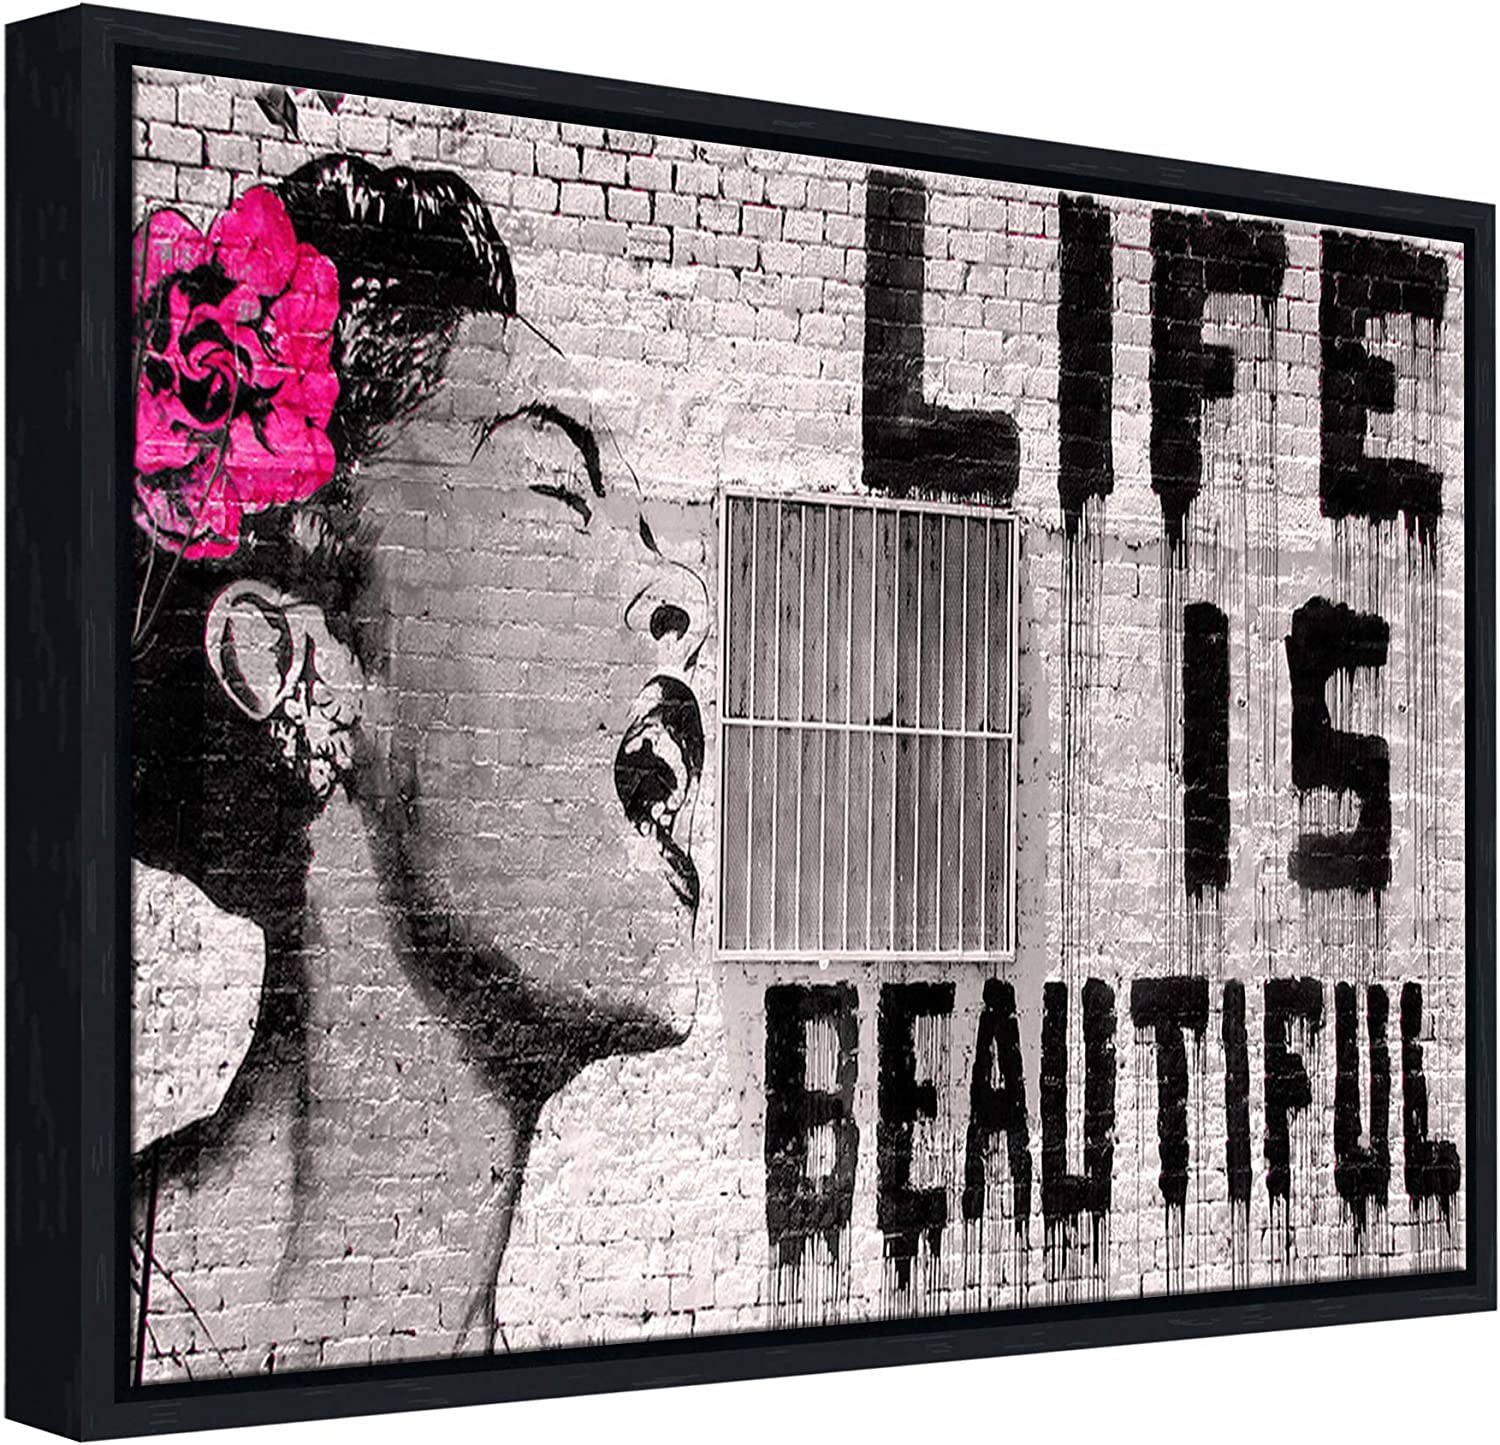 Amazon Com Wieco Art Framed Art Giclee Canvas Prints Of Banksy Life Is Beautiful Abstract Artwork For Wall Decor Black Frame Banksy 2 3040bf Posters Prints